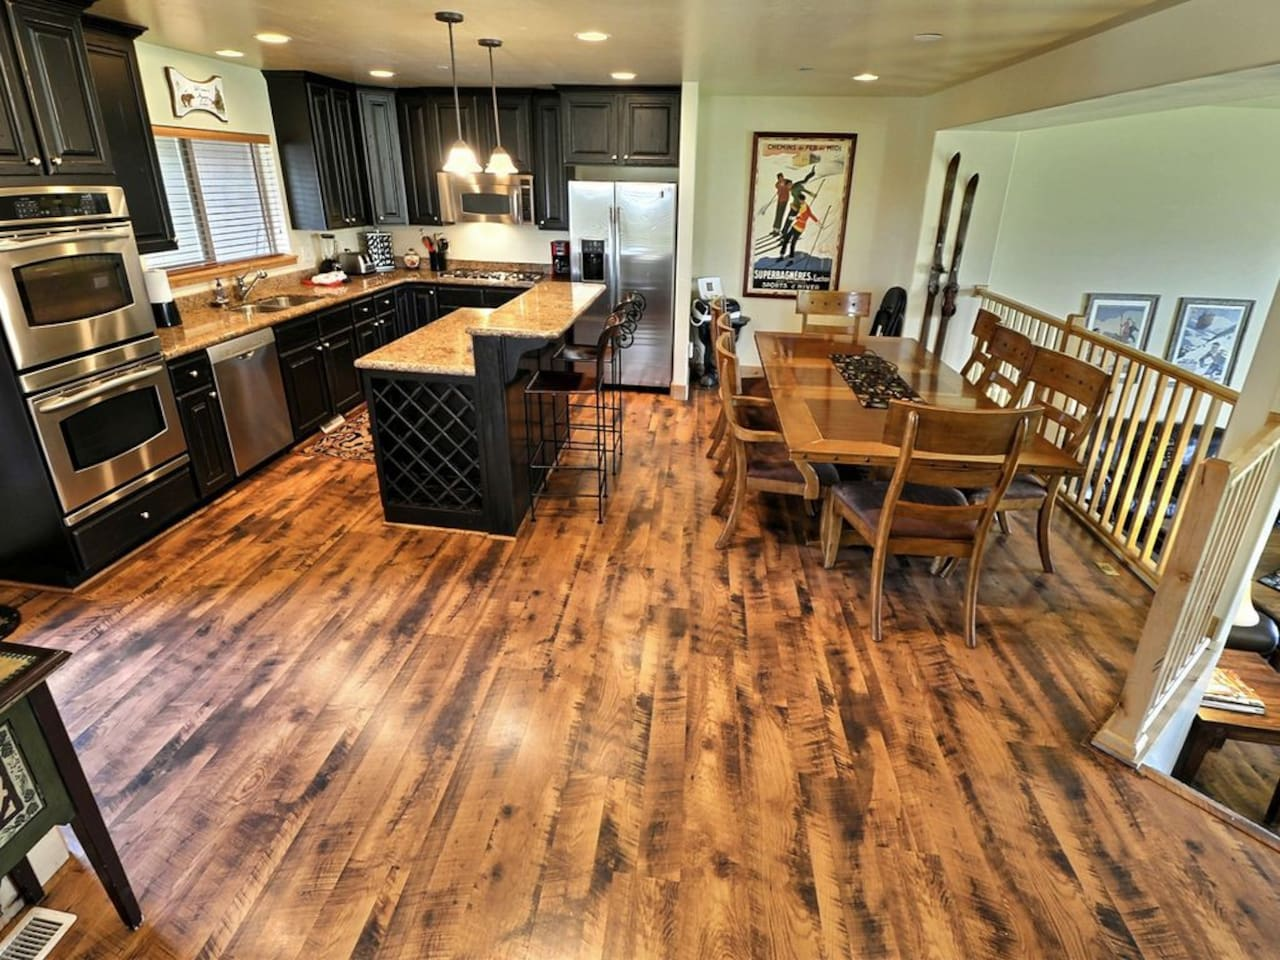 Gourmet Kitchen with Dining Bar and Dining Table